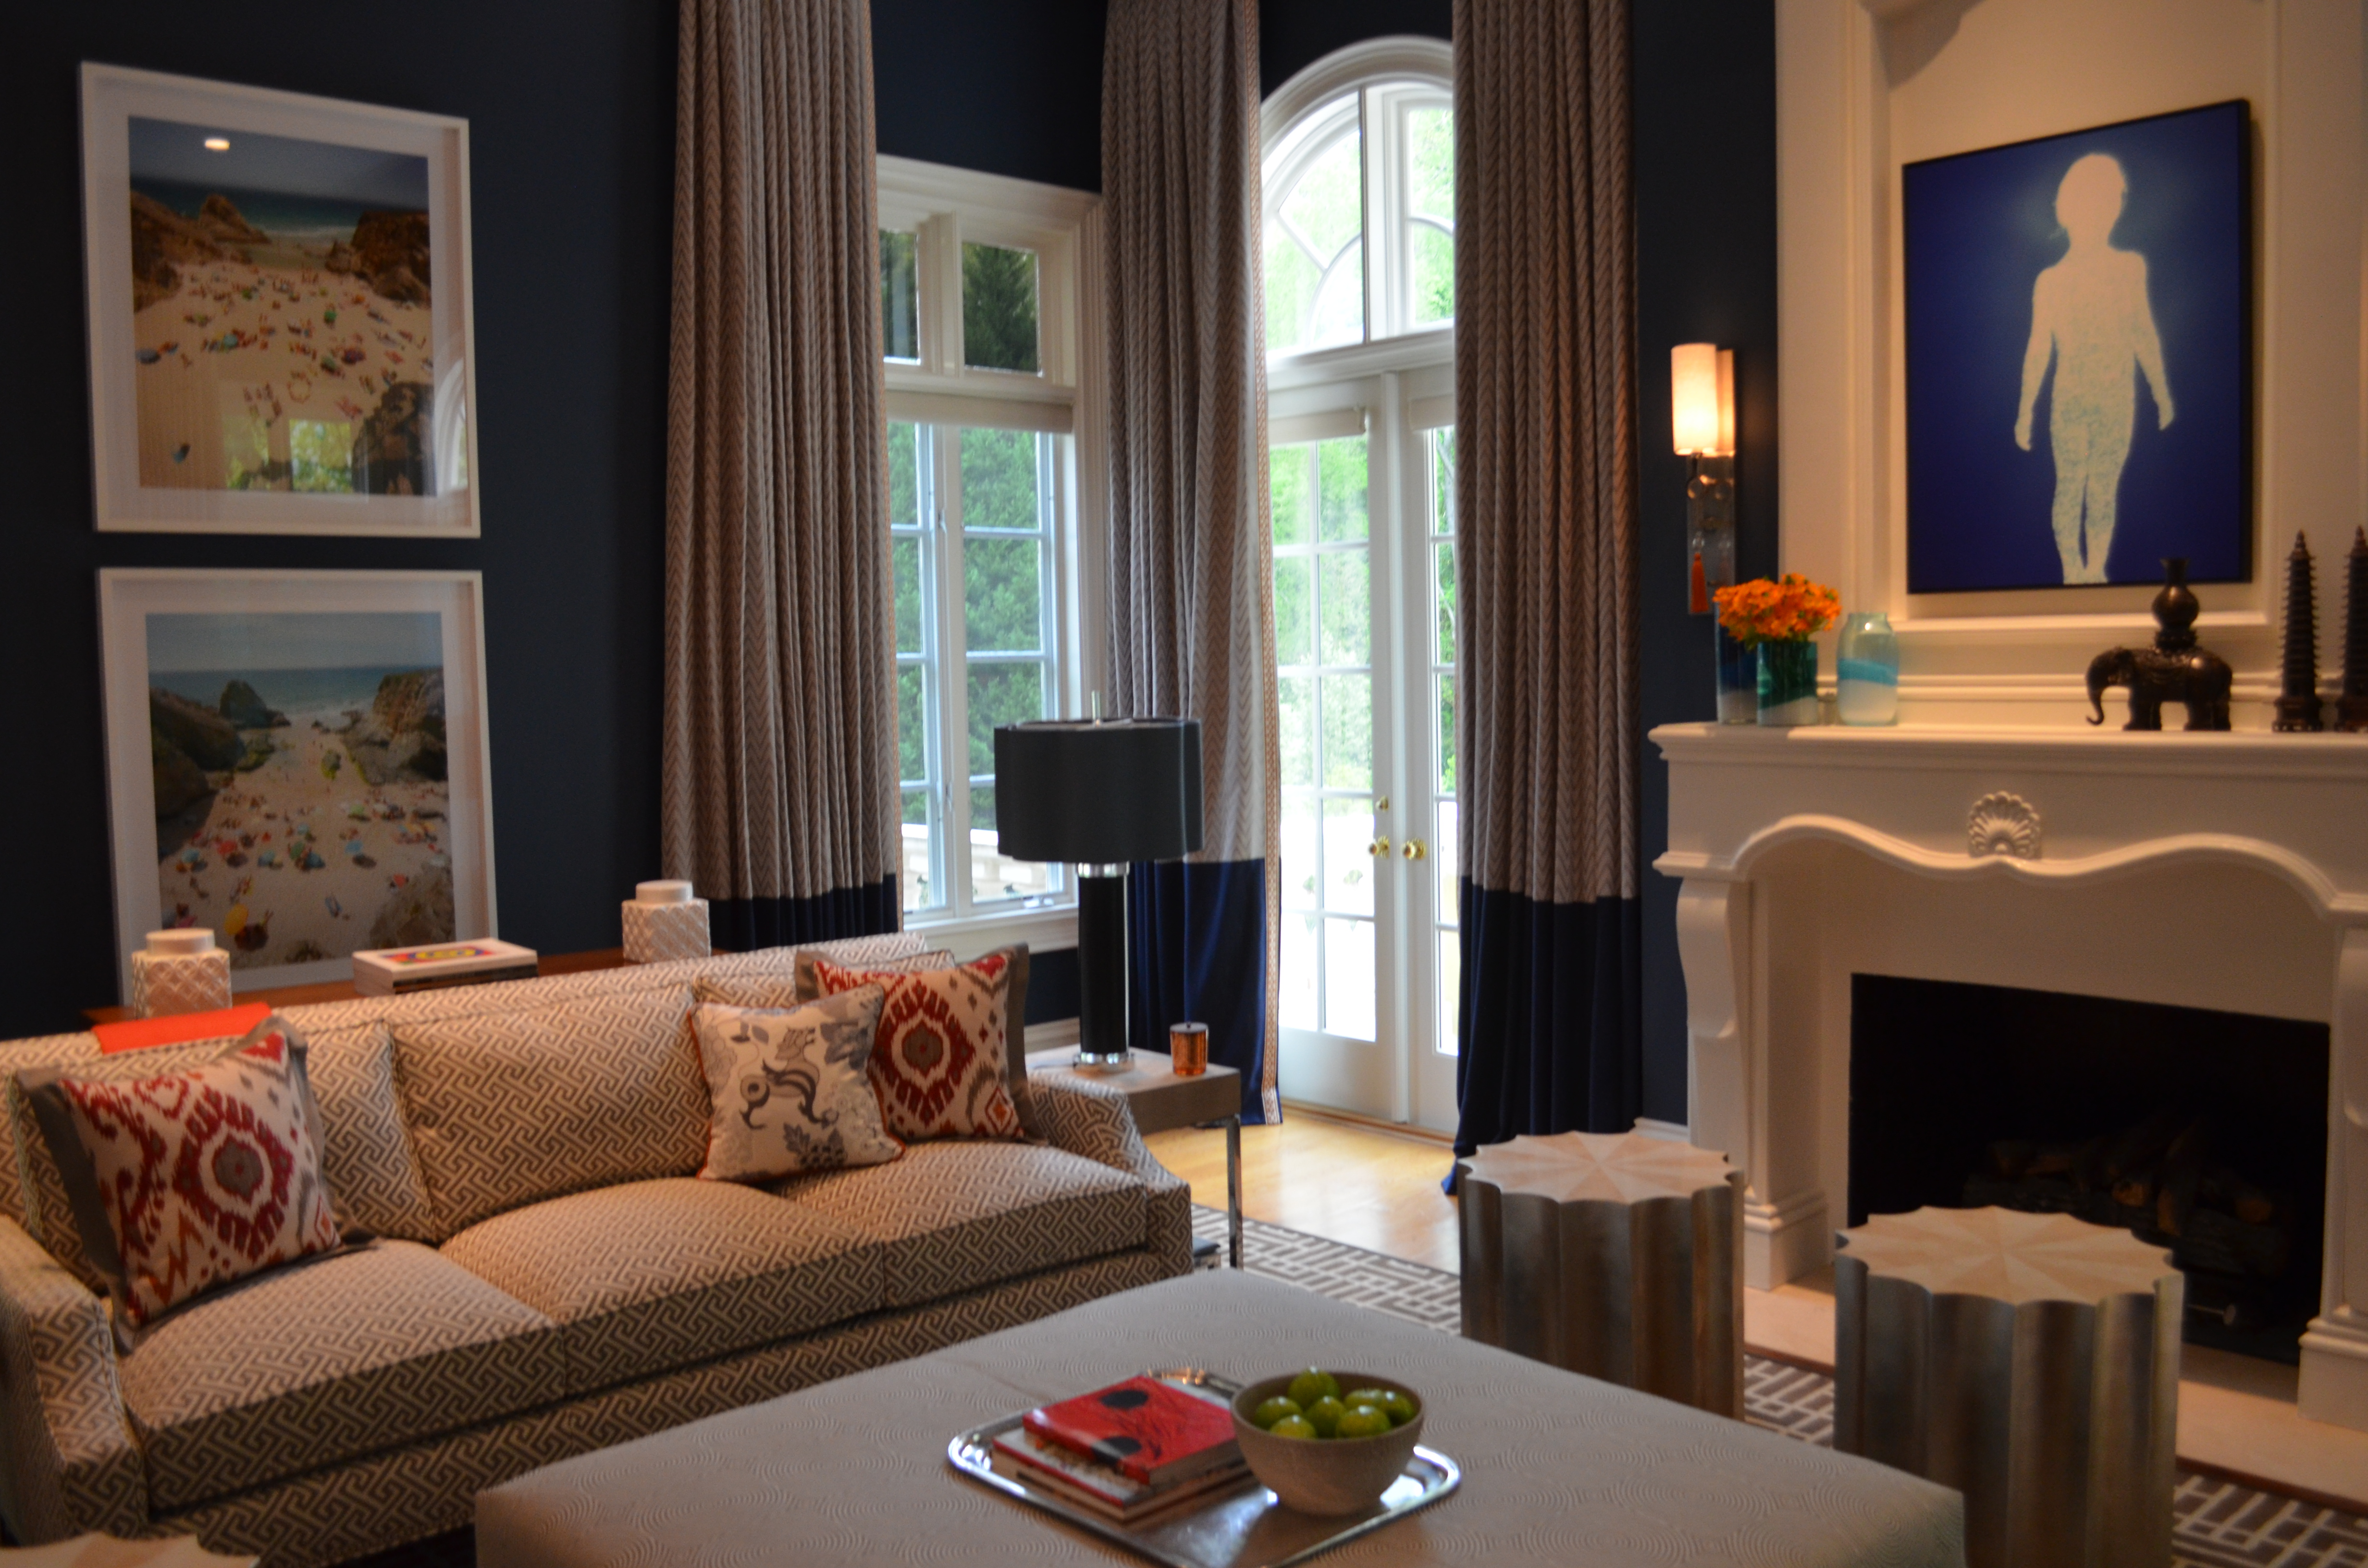 Great Room Colors aso show house archives - splendid habitat - interior design and